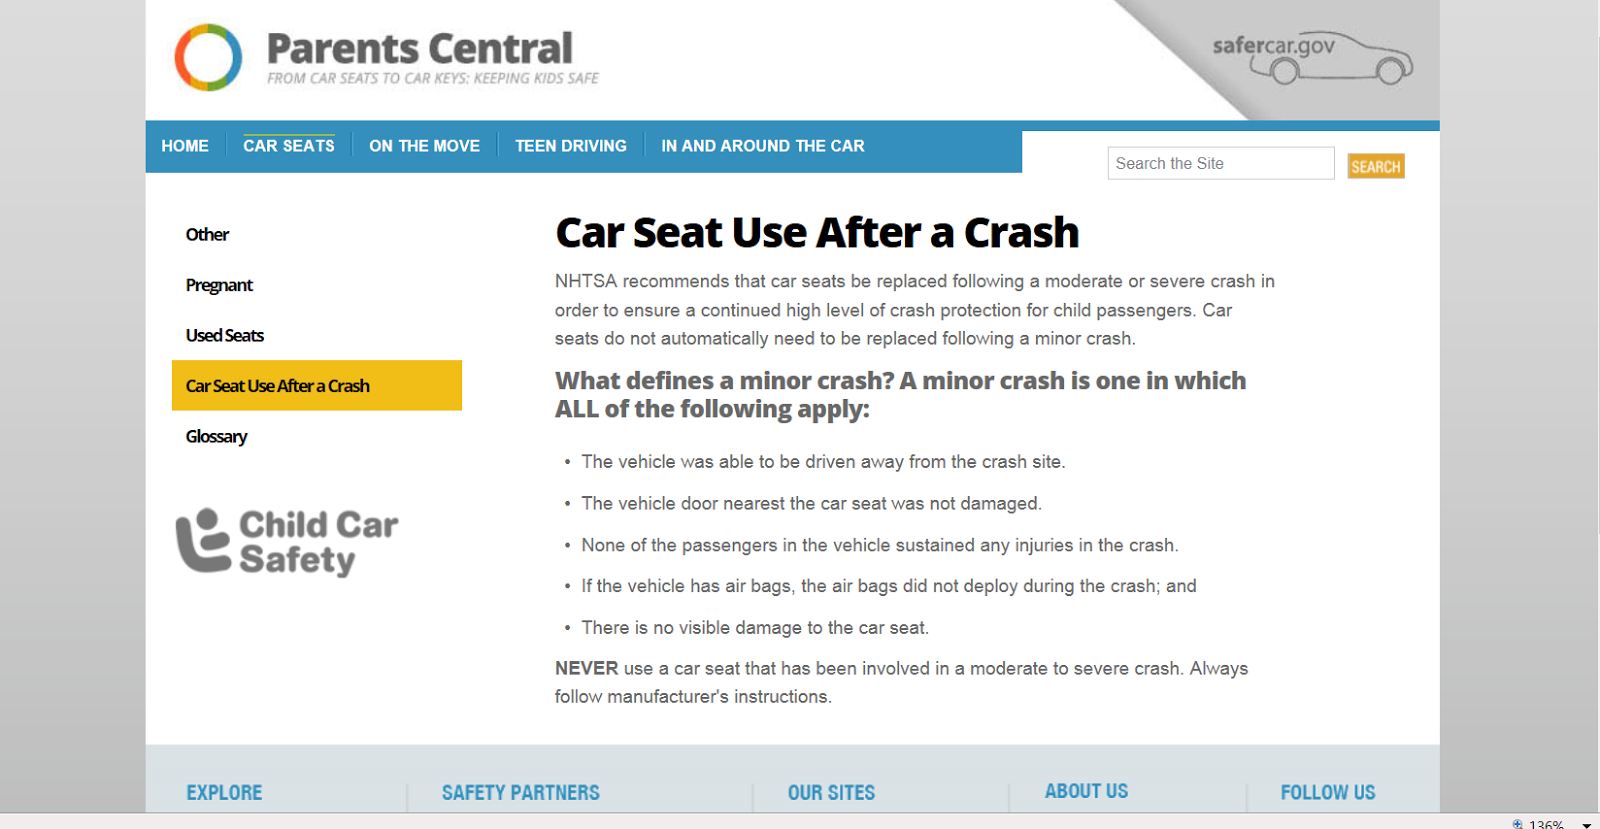 http://www.safercar.gov/parents/CrashSeats.htm